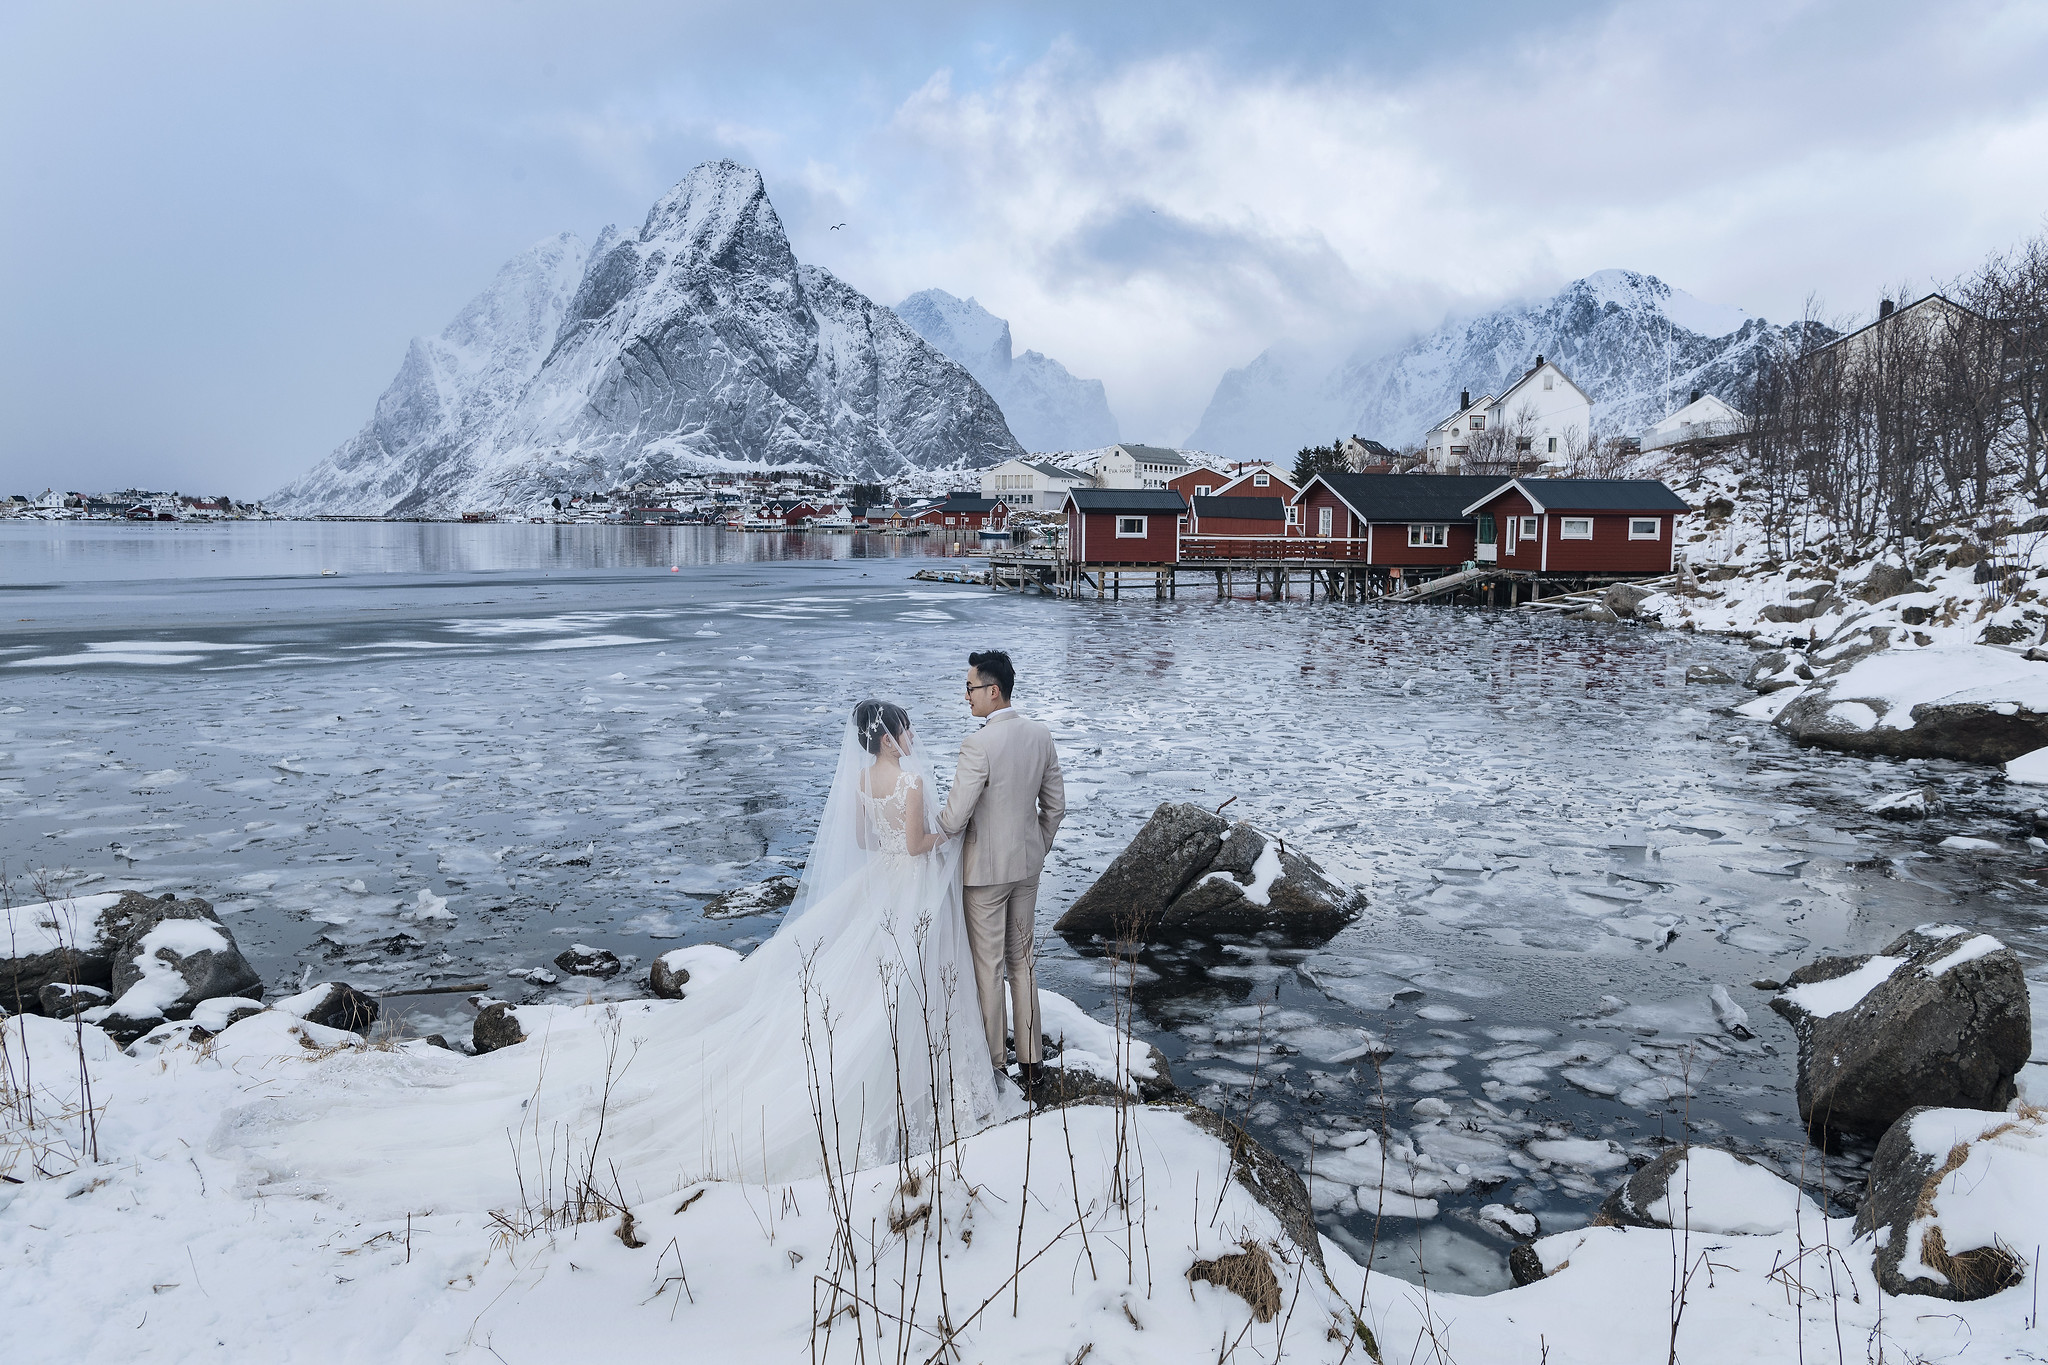 婚攝東法, Donfer, Donfer Photography, EASTERN WEDDING, Lofoten Island, Tromso , 挪威婚紗, 海外婚紗, 藝術婚紗, 光影